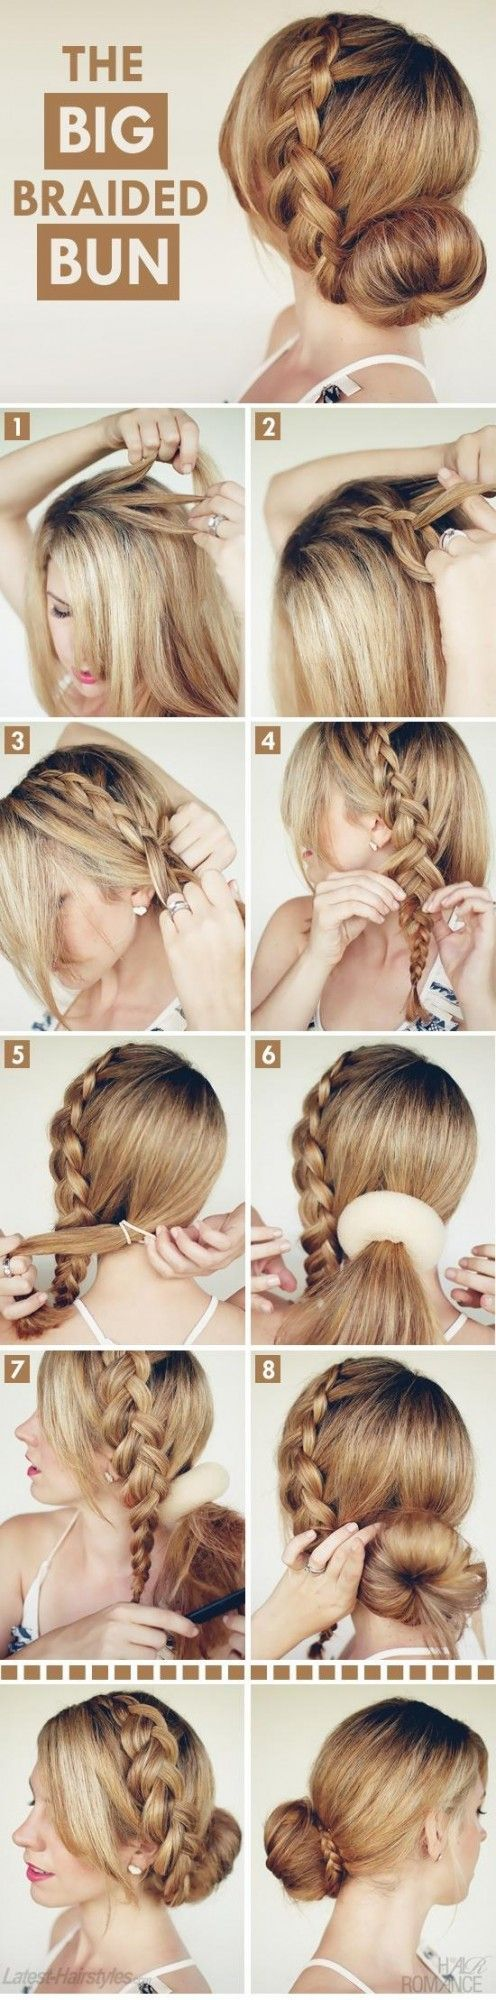 Braided Hairstyles Perfect For Homecoming Homecoming hairstyles